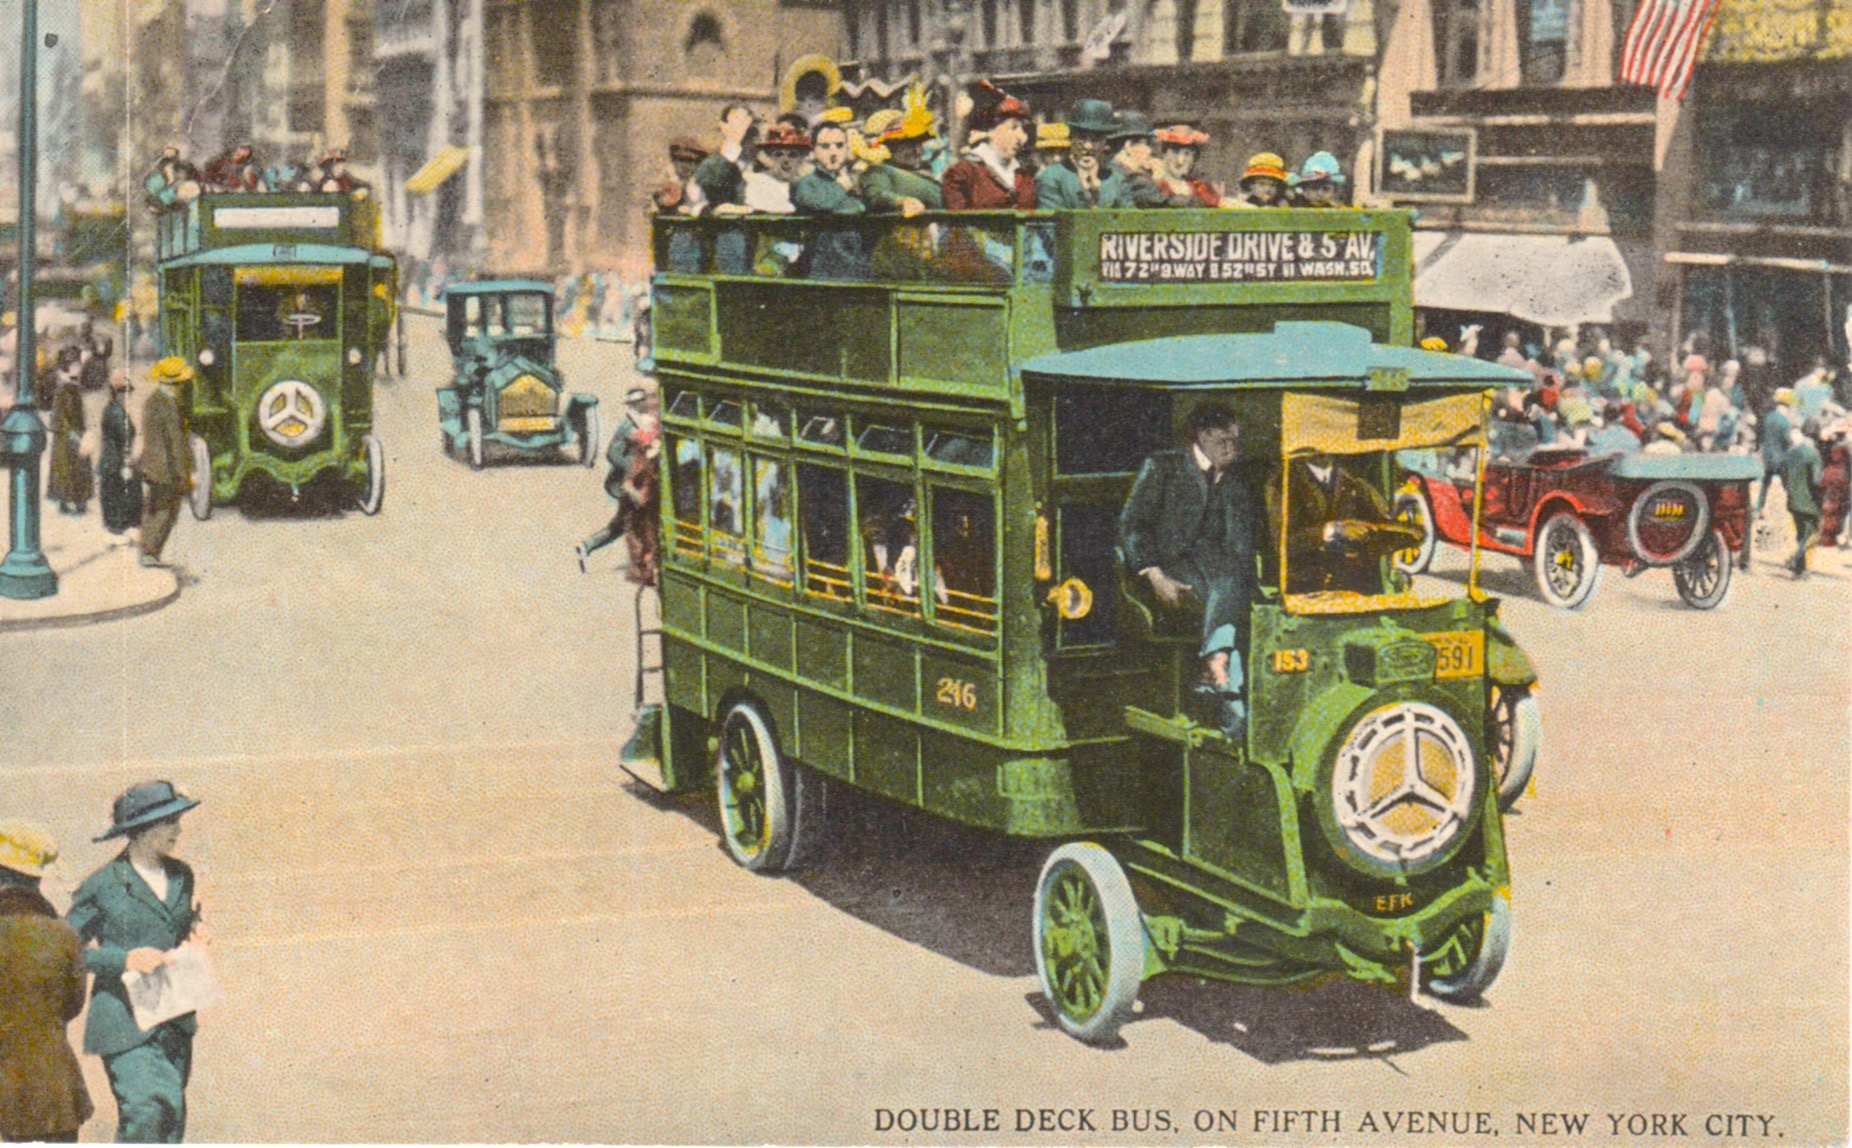 New York Was The First City To Use Motor Omnibuses For Public Transit And The Earliest Fleet Hit The Streets In 1902 According To The Wheels That Drove